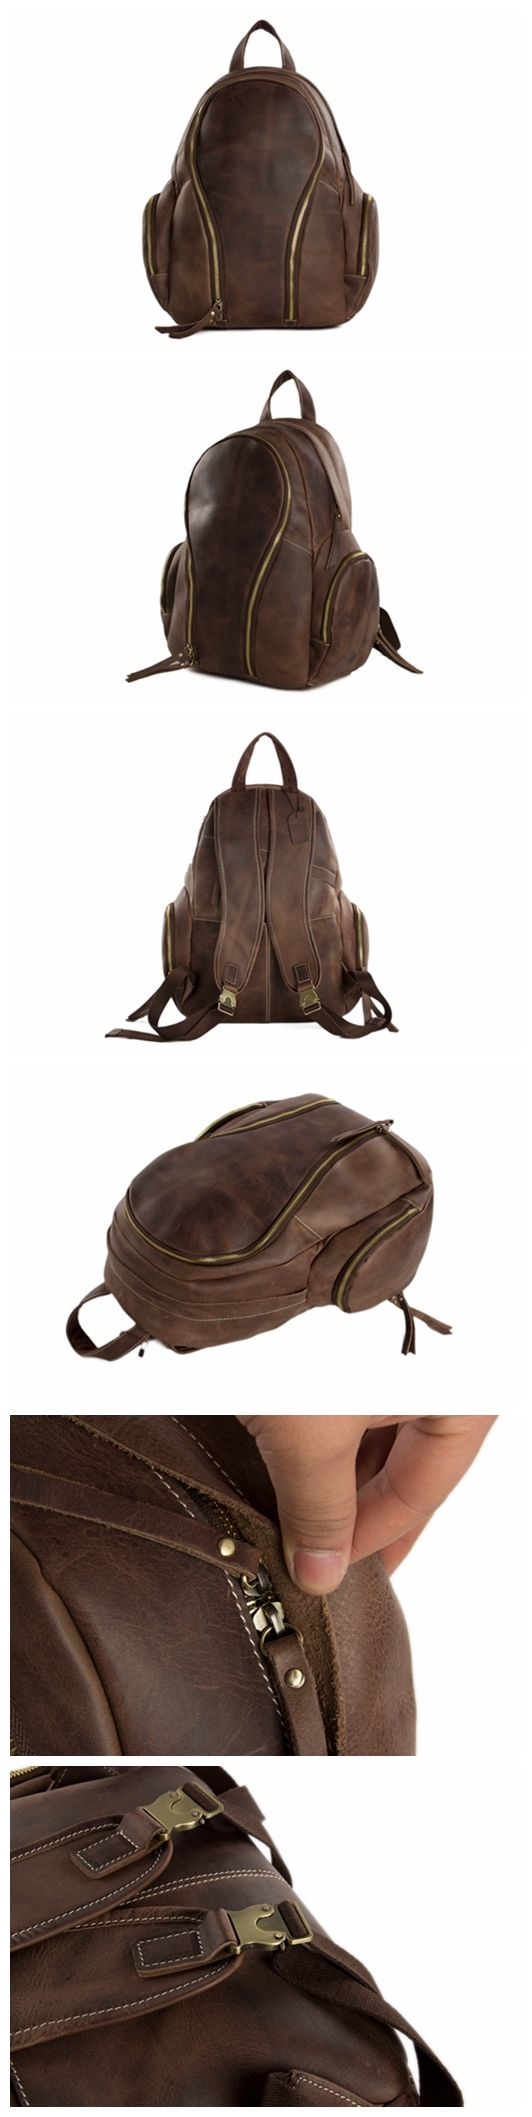 Handcrafted Genuine Leather Backpack Travel Backpack,Laptop Bag, School Backpack